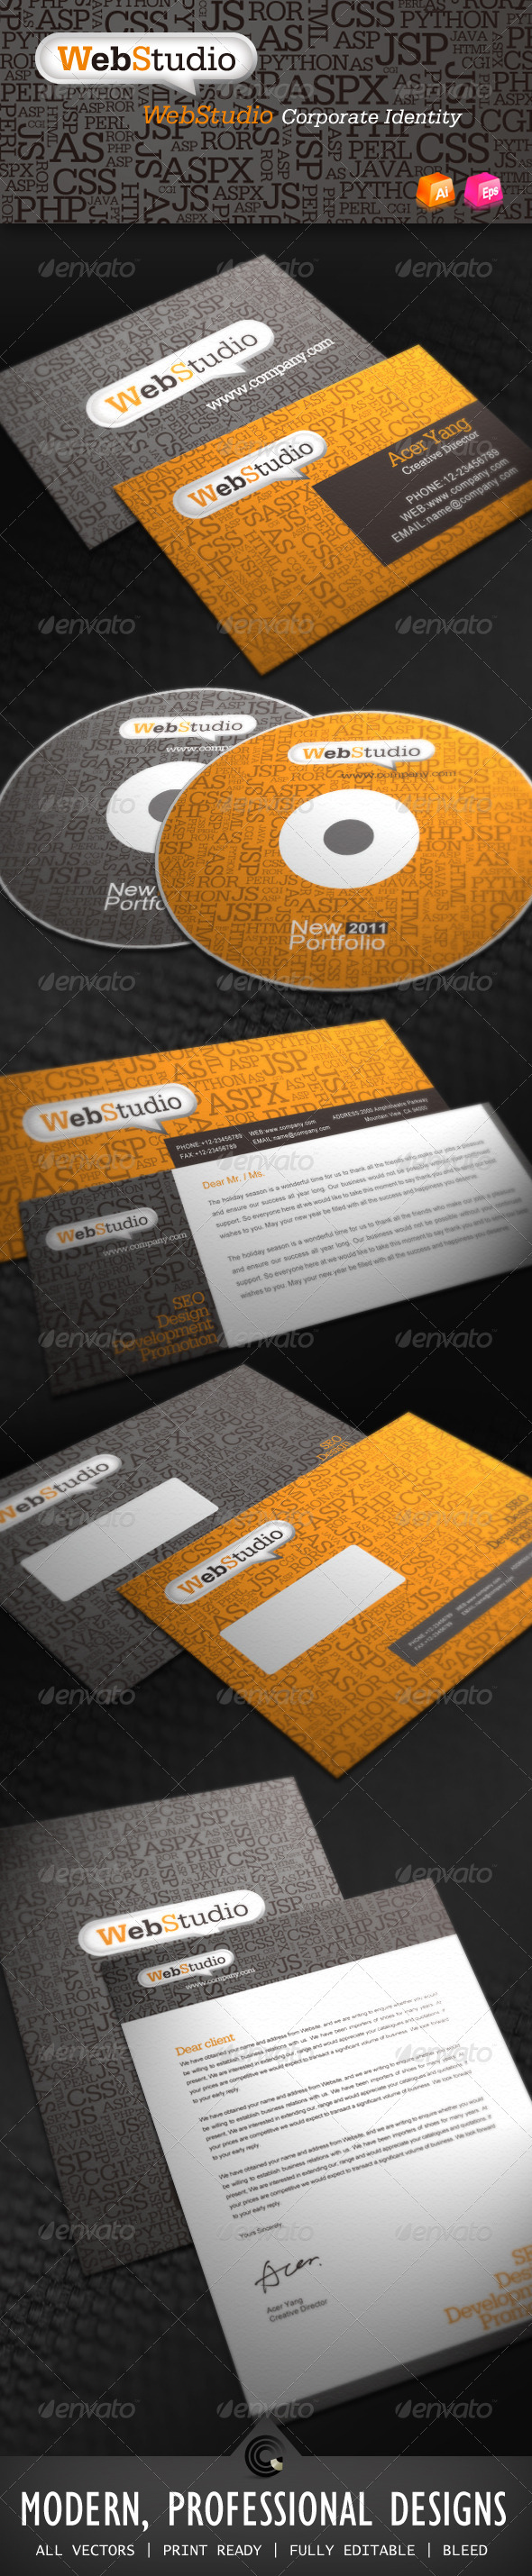 Web Studio Corporate Identity - Stationery Print Templates